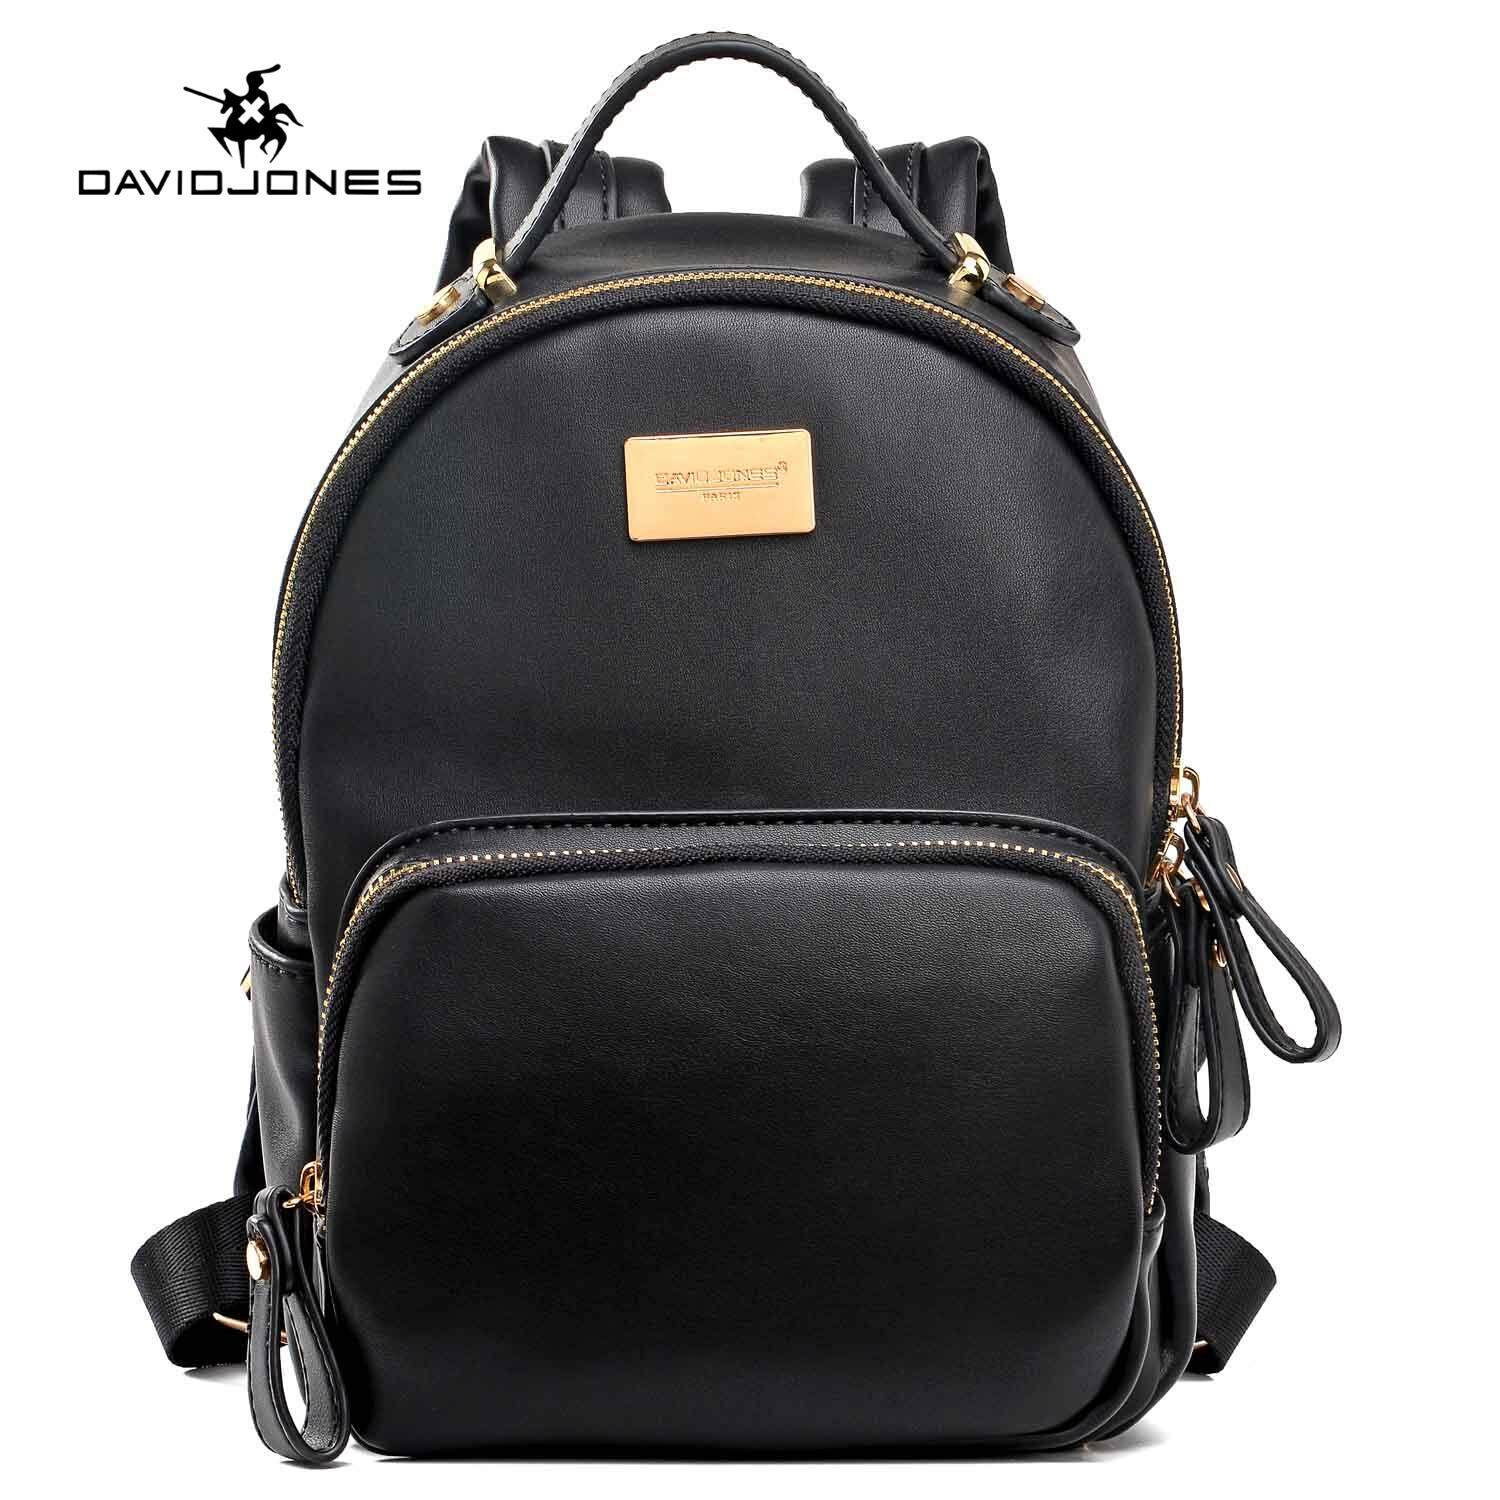 David Jones Bags for Women Philippines - David Jones Womens Bags for sale -  prices   reviews  479c0c62f2ff9